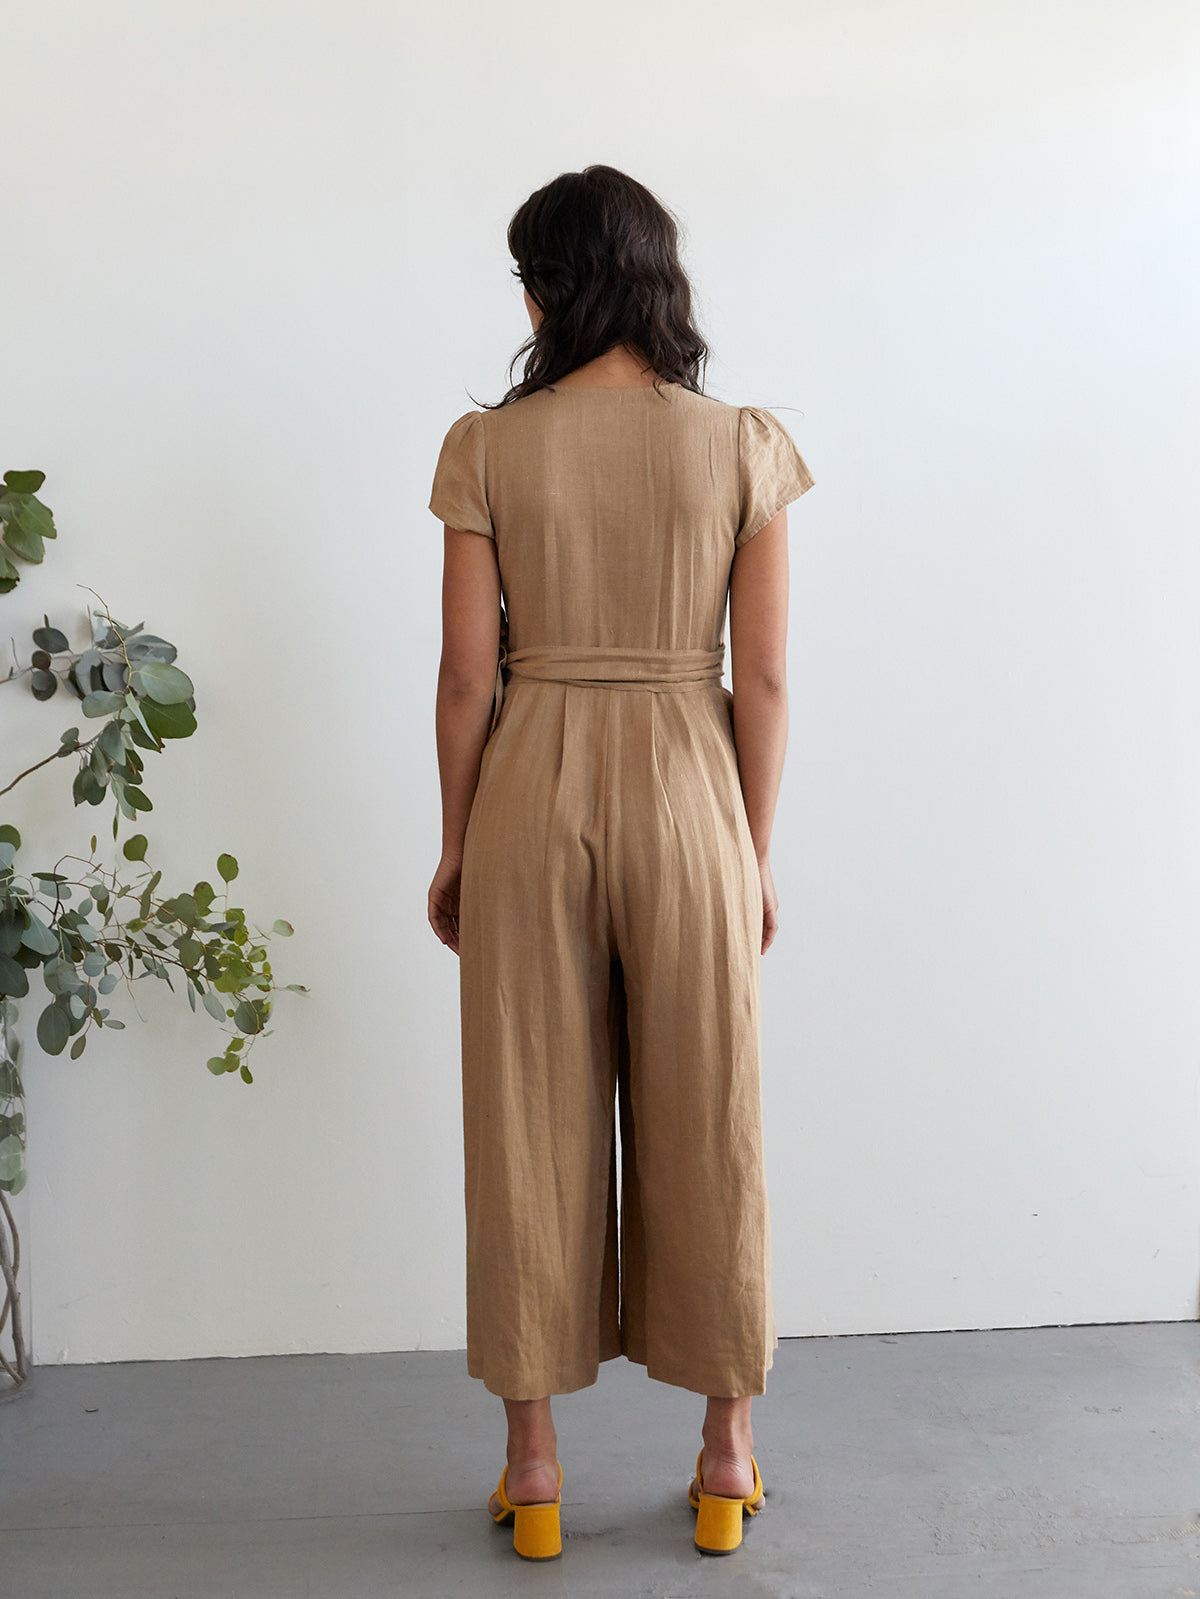 The Angela Jumpsuit | BarleyJumpsuits - sugarcandymtn.com